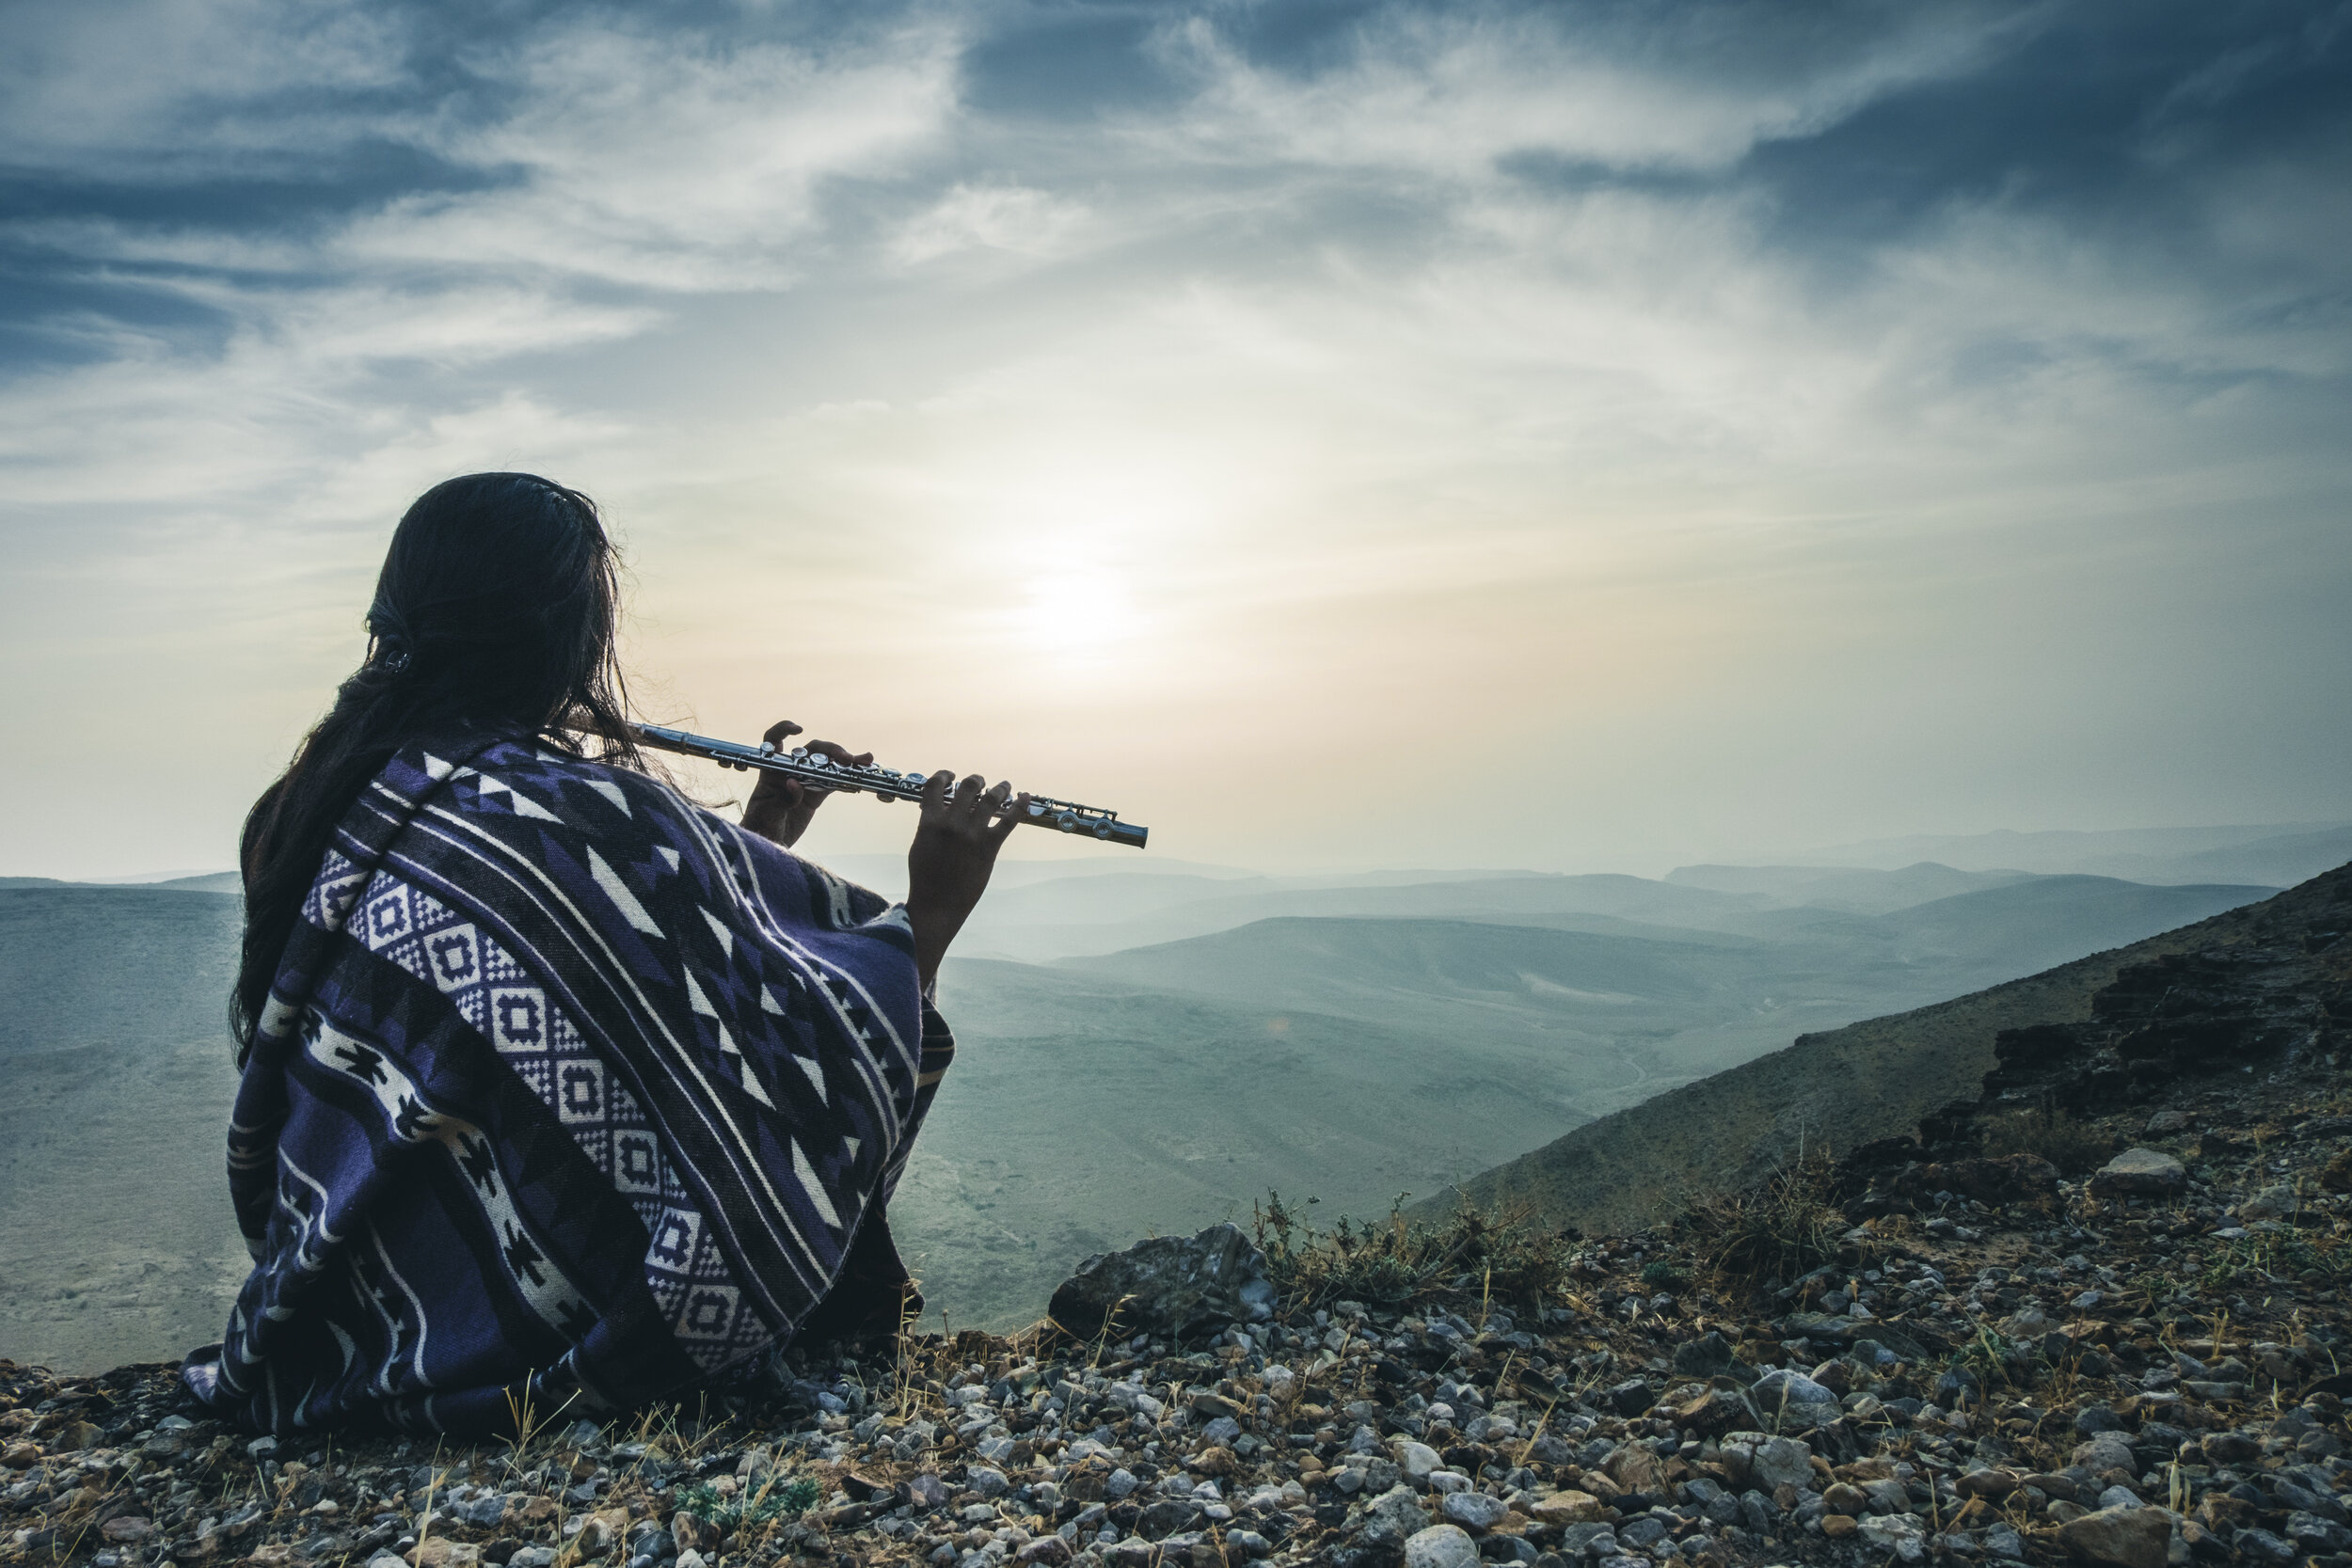 Learning to play the flute by myself without one-on-one instruction was detrimental to my learning. I had to undo years of bad practice. As a self-taught programmer, it's all-too-easy to fall into bad practices.